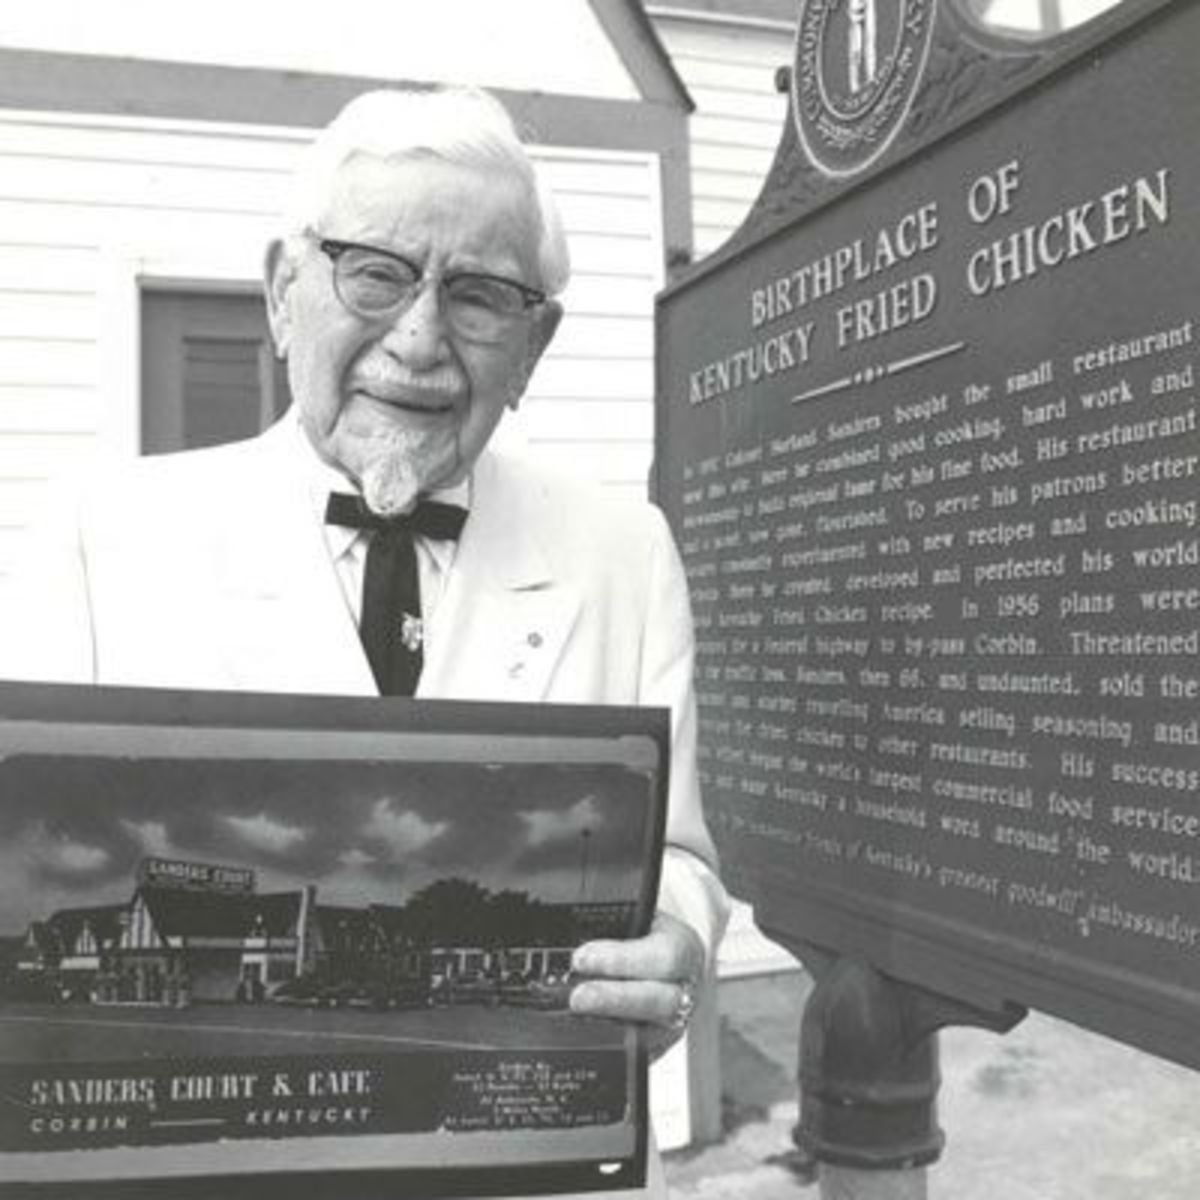 Colonel Sanders at place where Kentucky Fried Chicken started